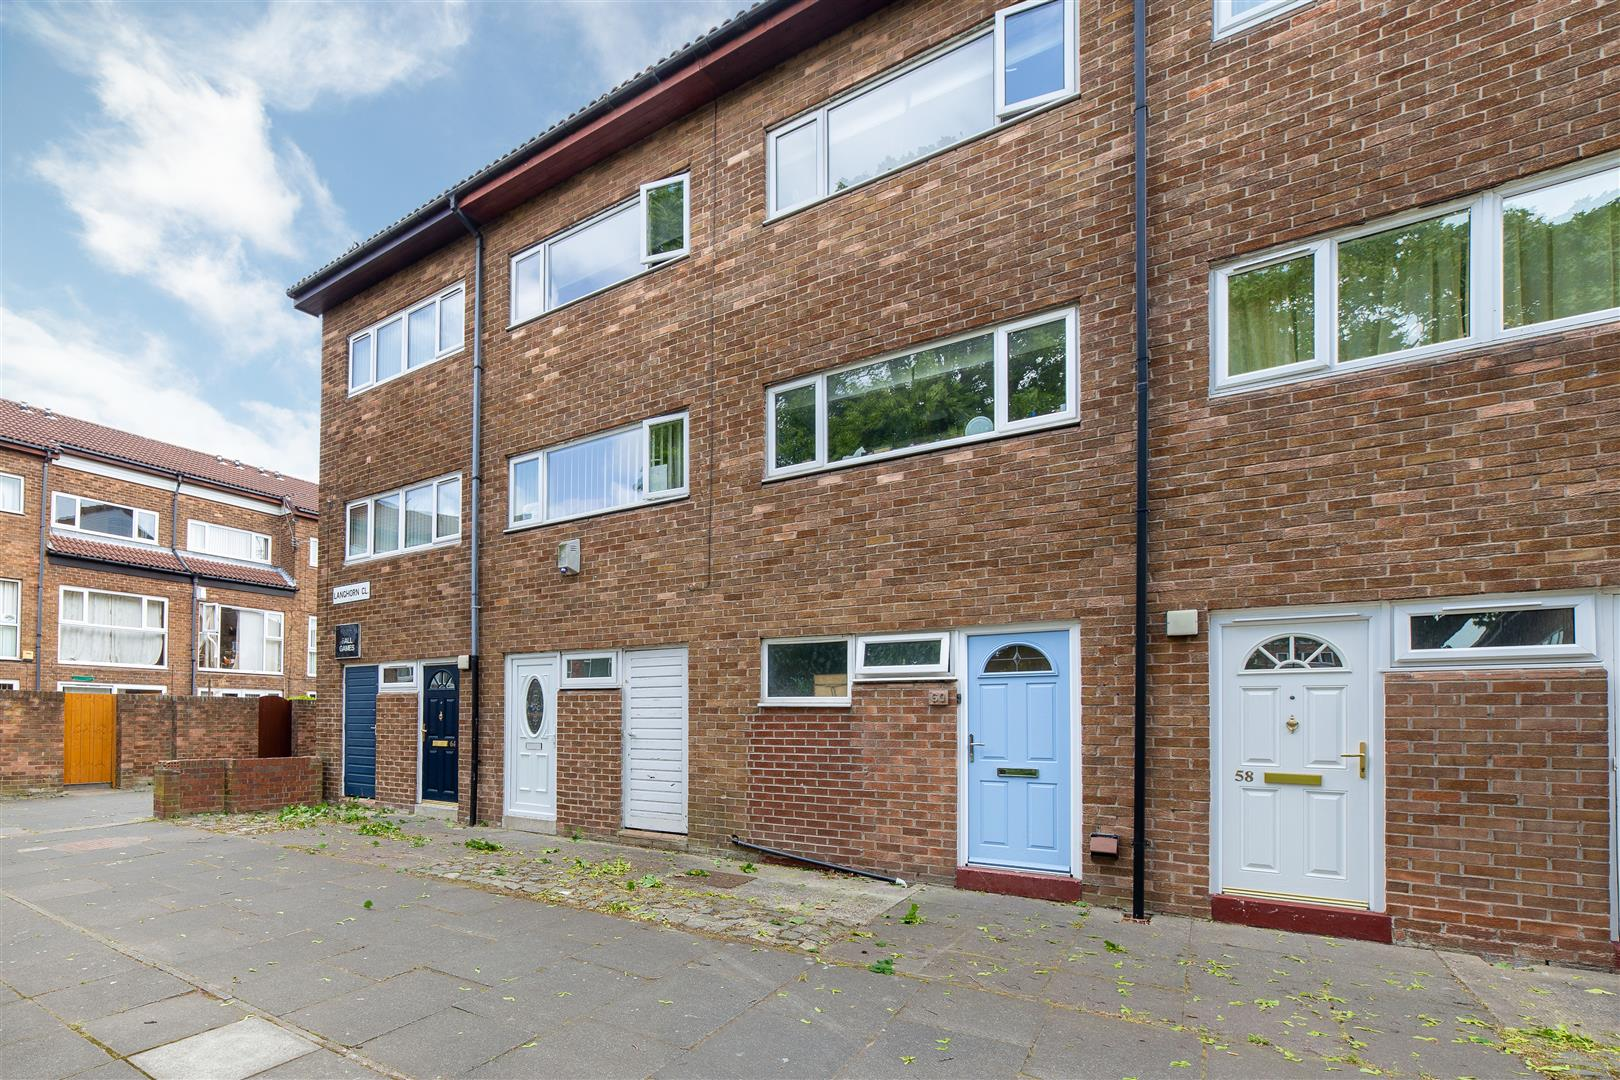 3 bed town house for sale in Newcastle Upon Tyne, NE6 1XL, NE6